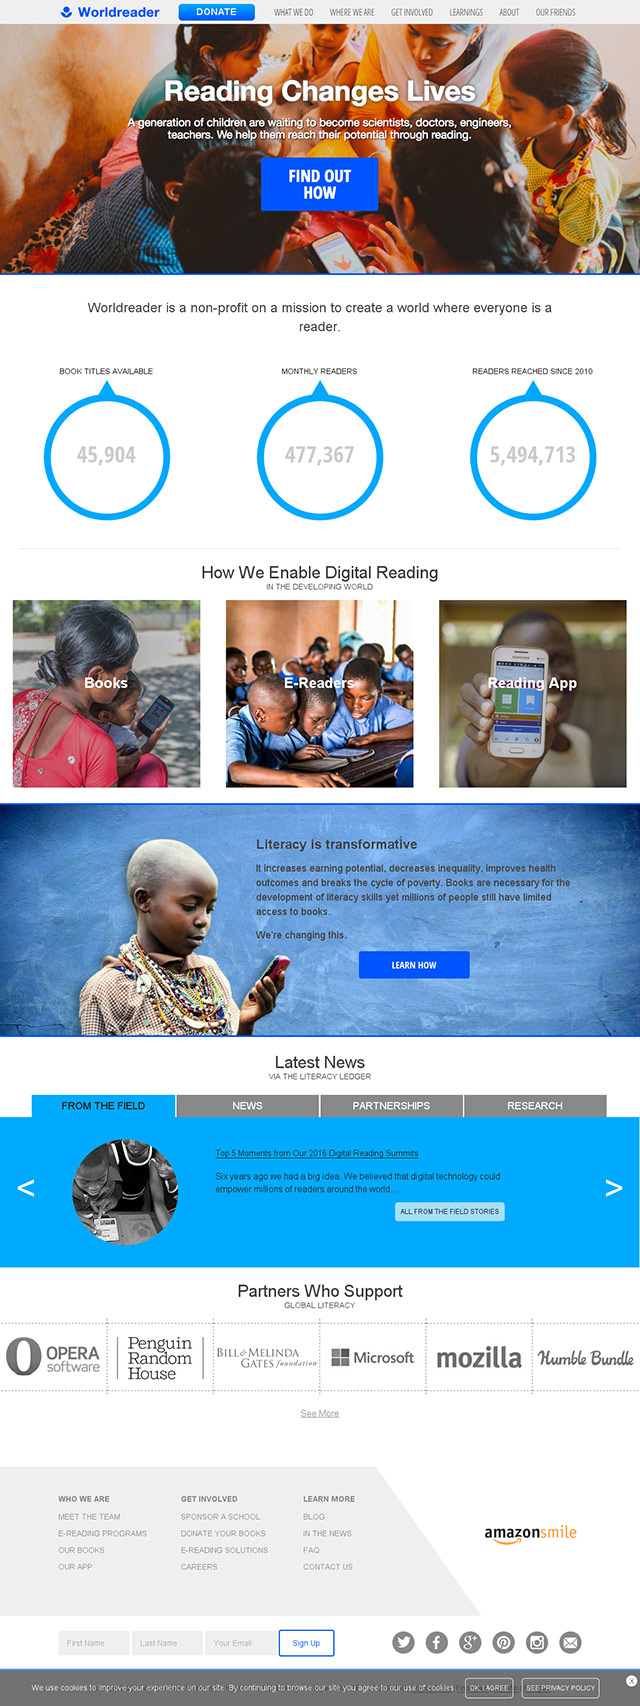 Worldreader website homepage in 2017